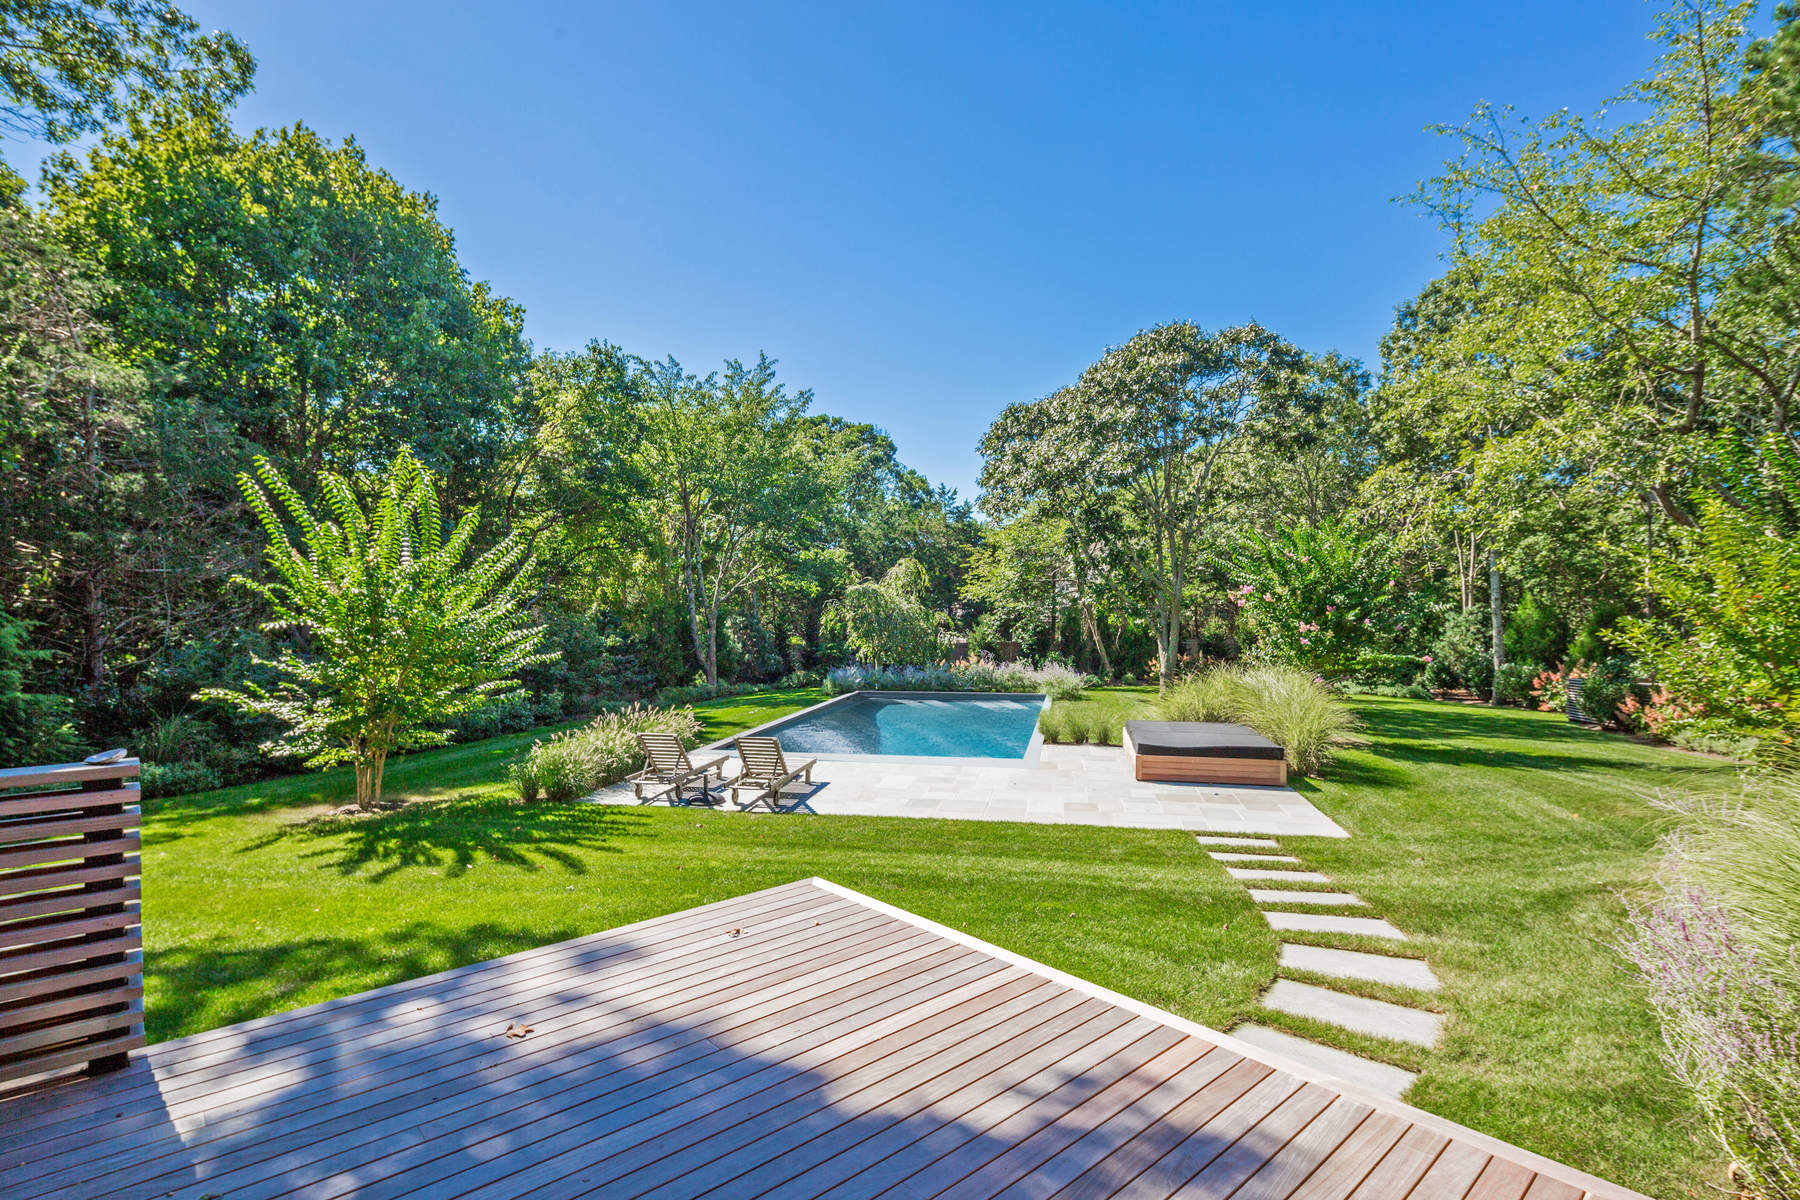 MODERN LUXURY NEAR EAST HAMPTON BEACHES 4 Dominy Court East Hampton, New York 11937 United States